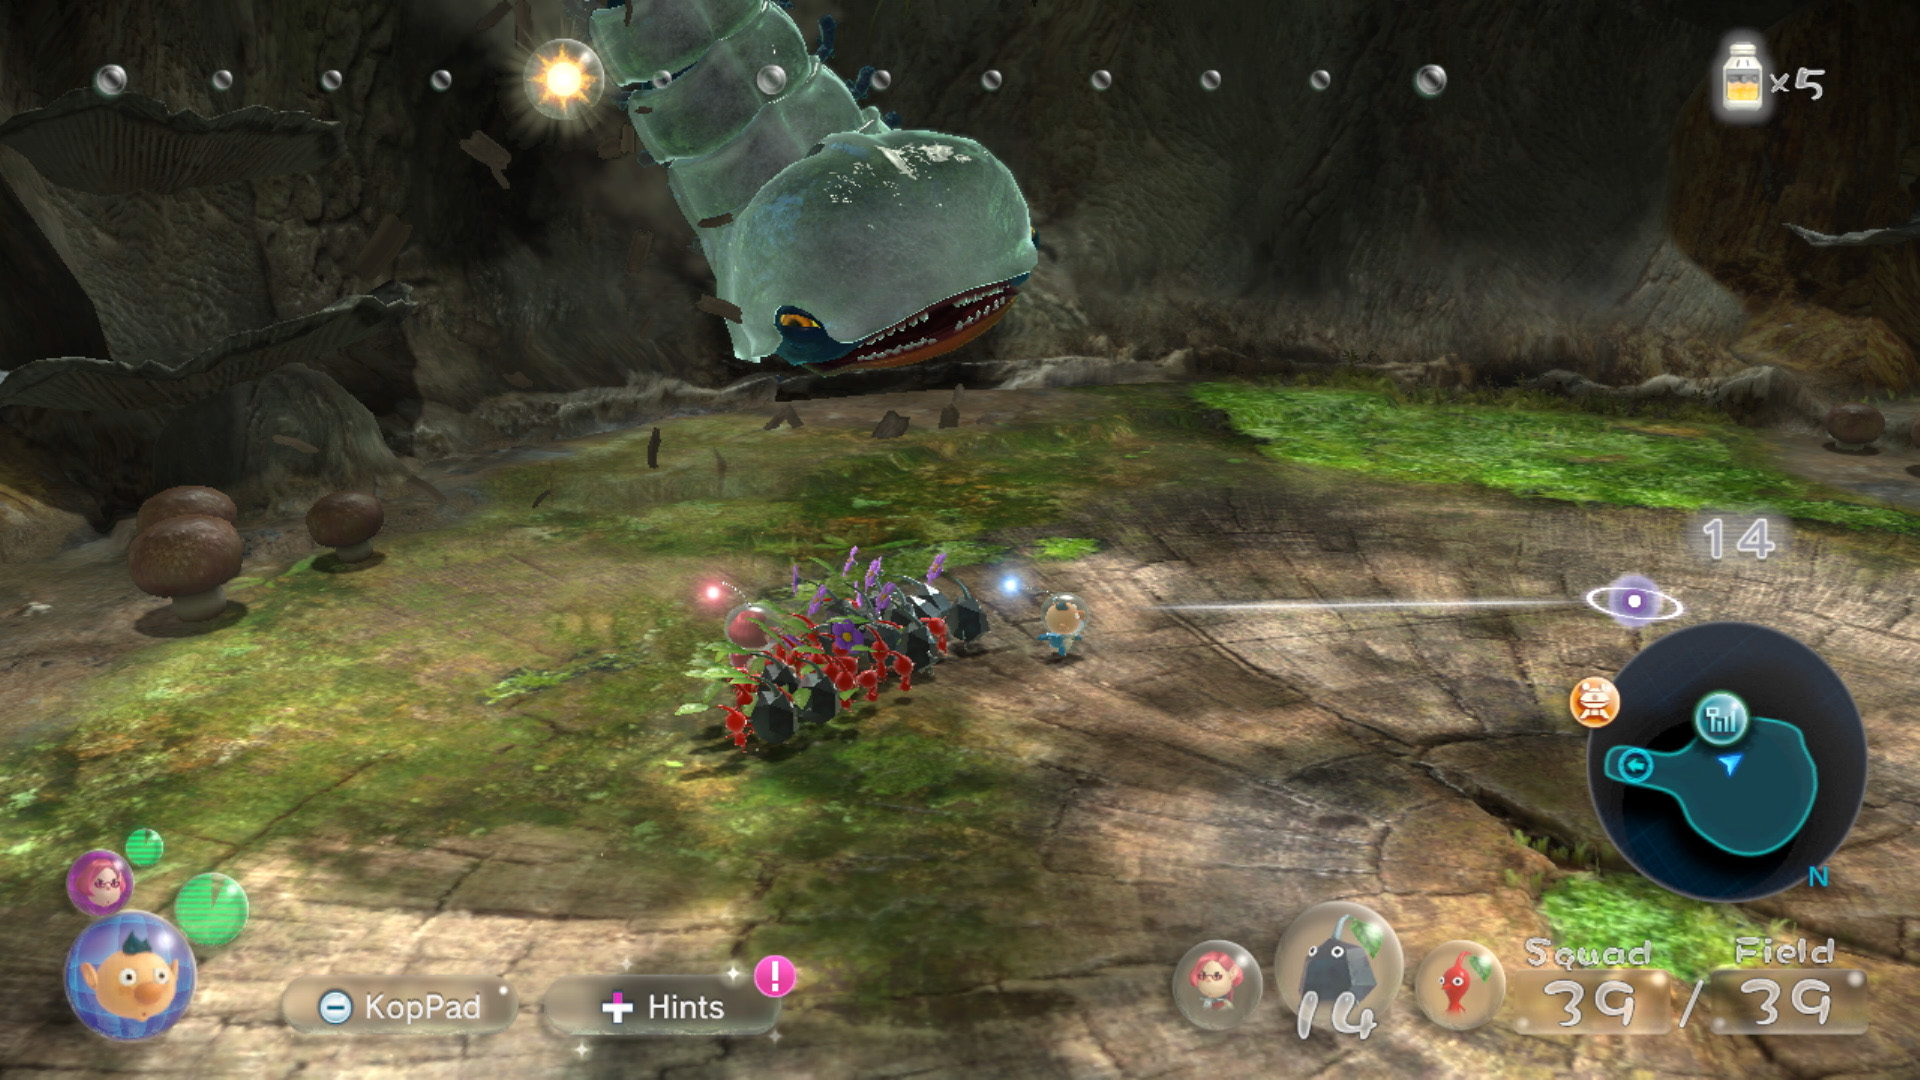 Link a Pikmin3Deluxe_scrn_018